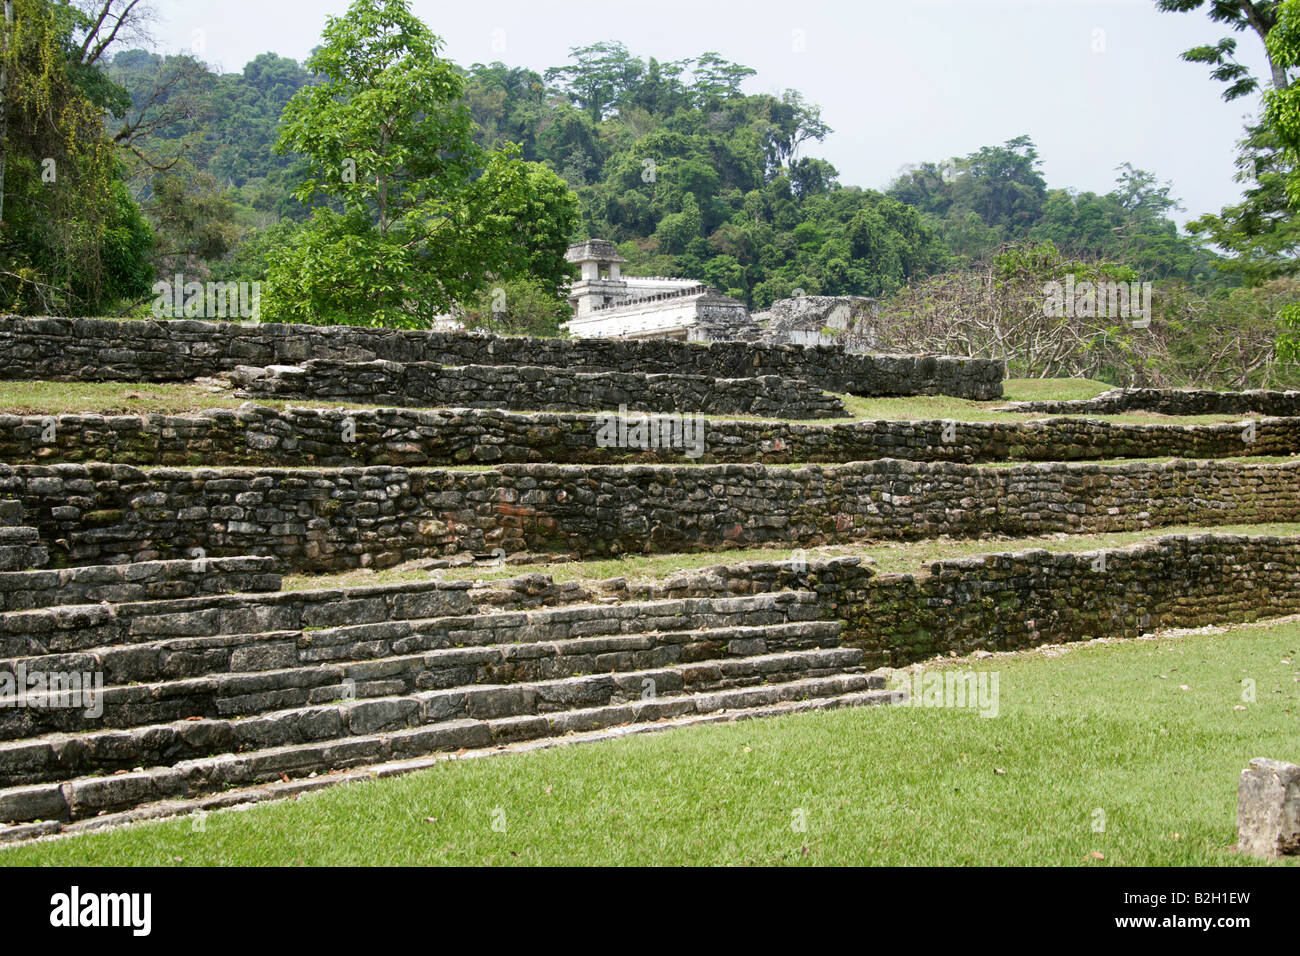 Stone Terraces and Palace, Palenque Archeological Site, Chiapas State, Mexico Stock Photo